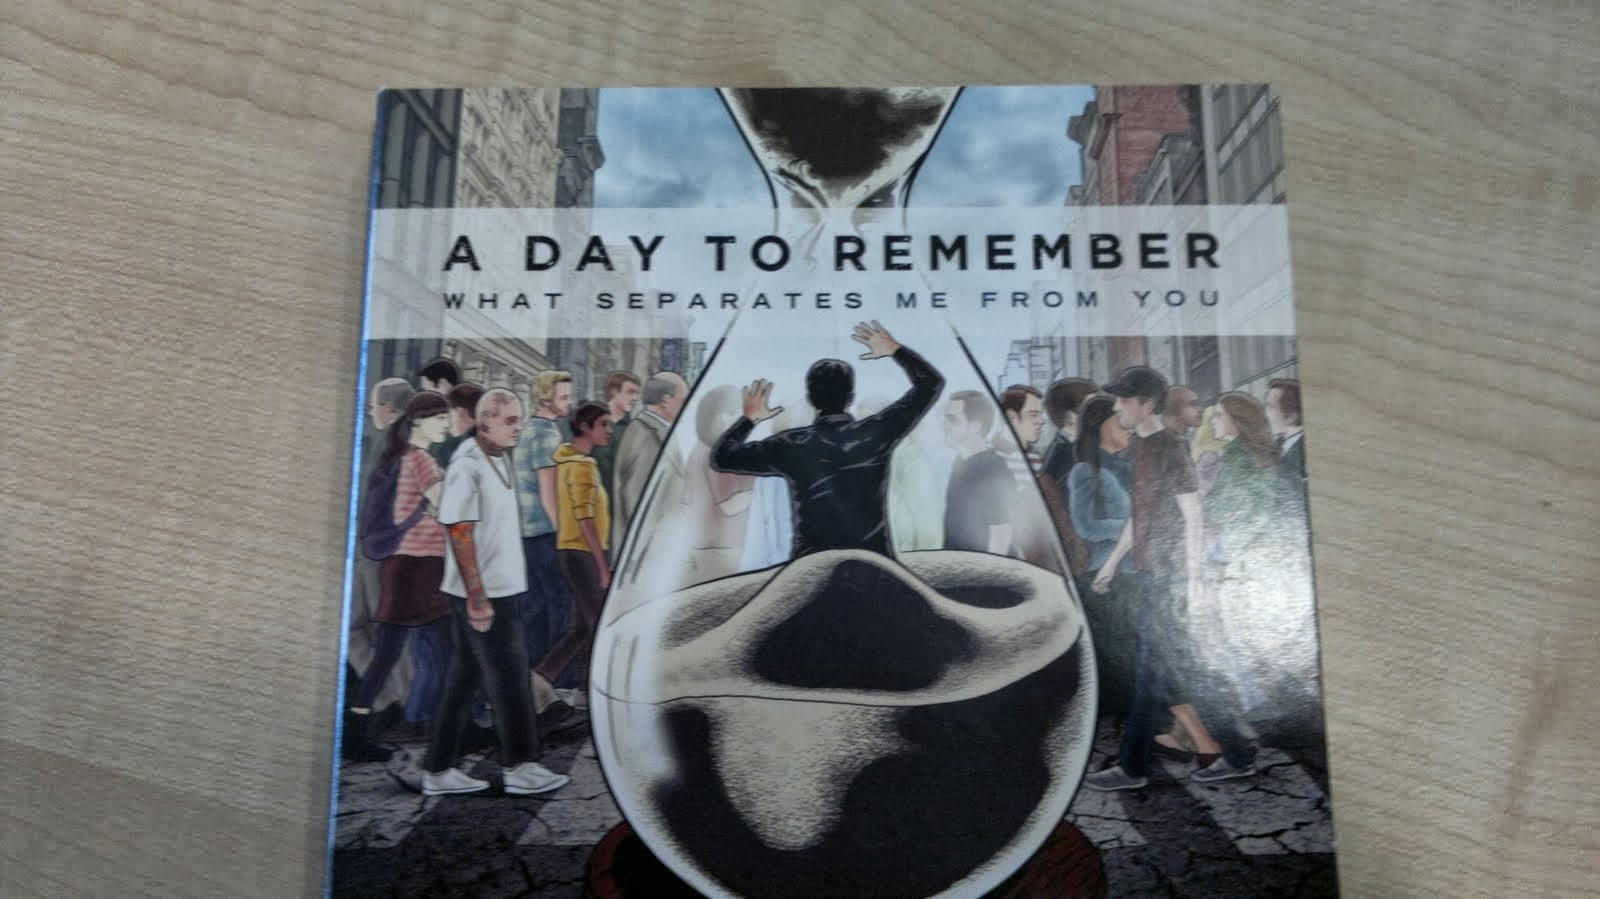 Gallery For - A Day To Remember What Separates Me From You Album CoverWhat Separates Me From You Album Cover